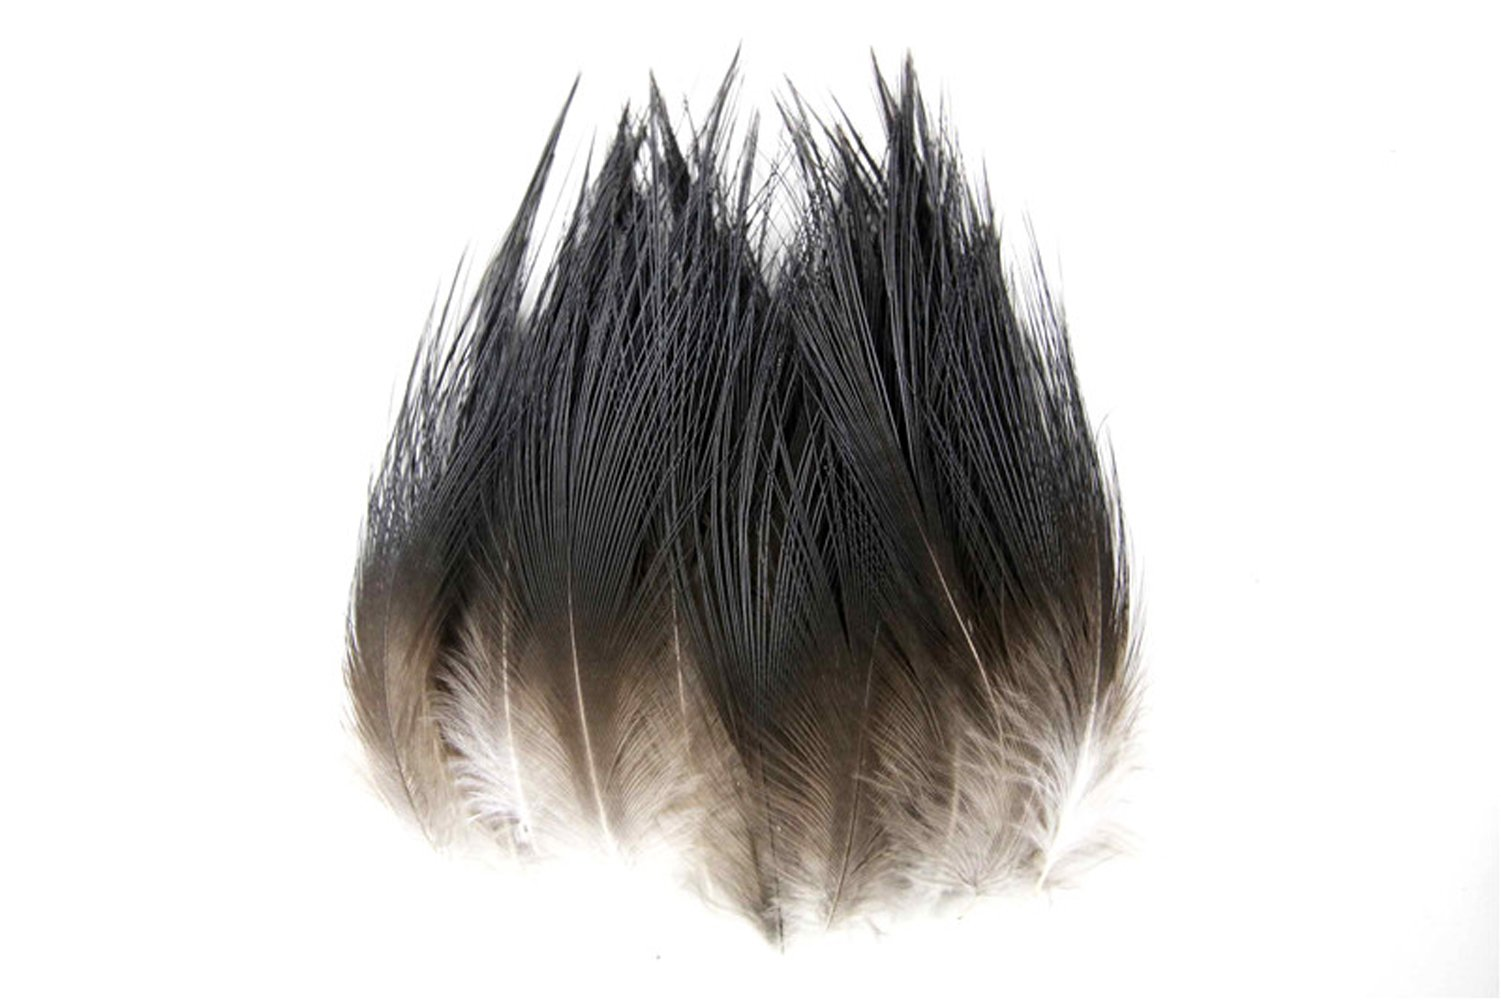 Insomnia Star 100 pcs Black Rare Beautiful Natural Pheasant Feather 5-10cm/2-4inch